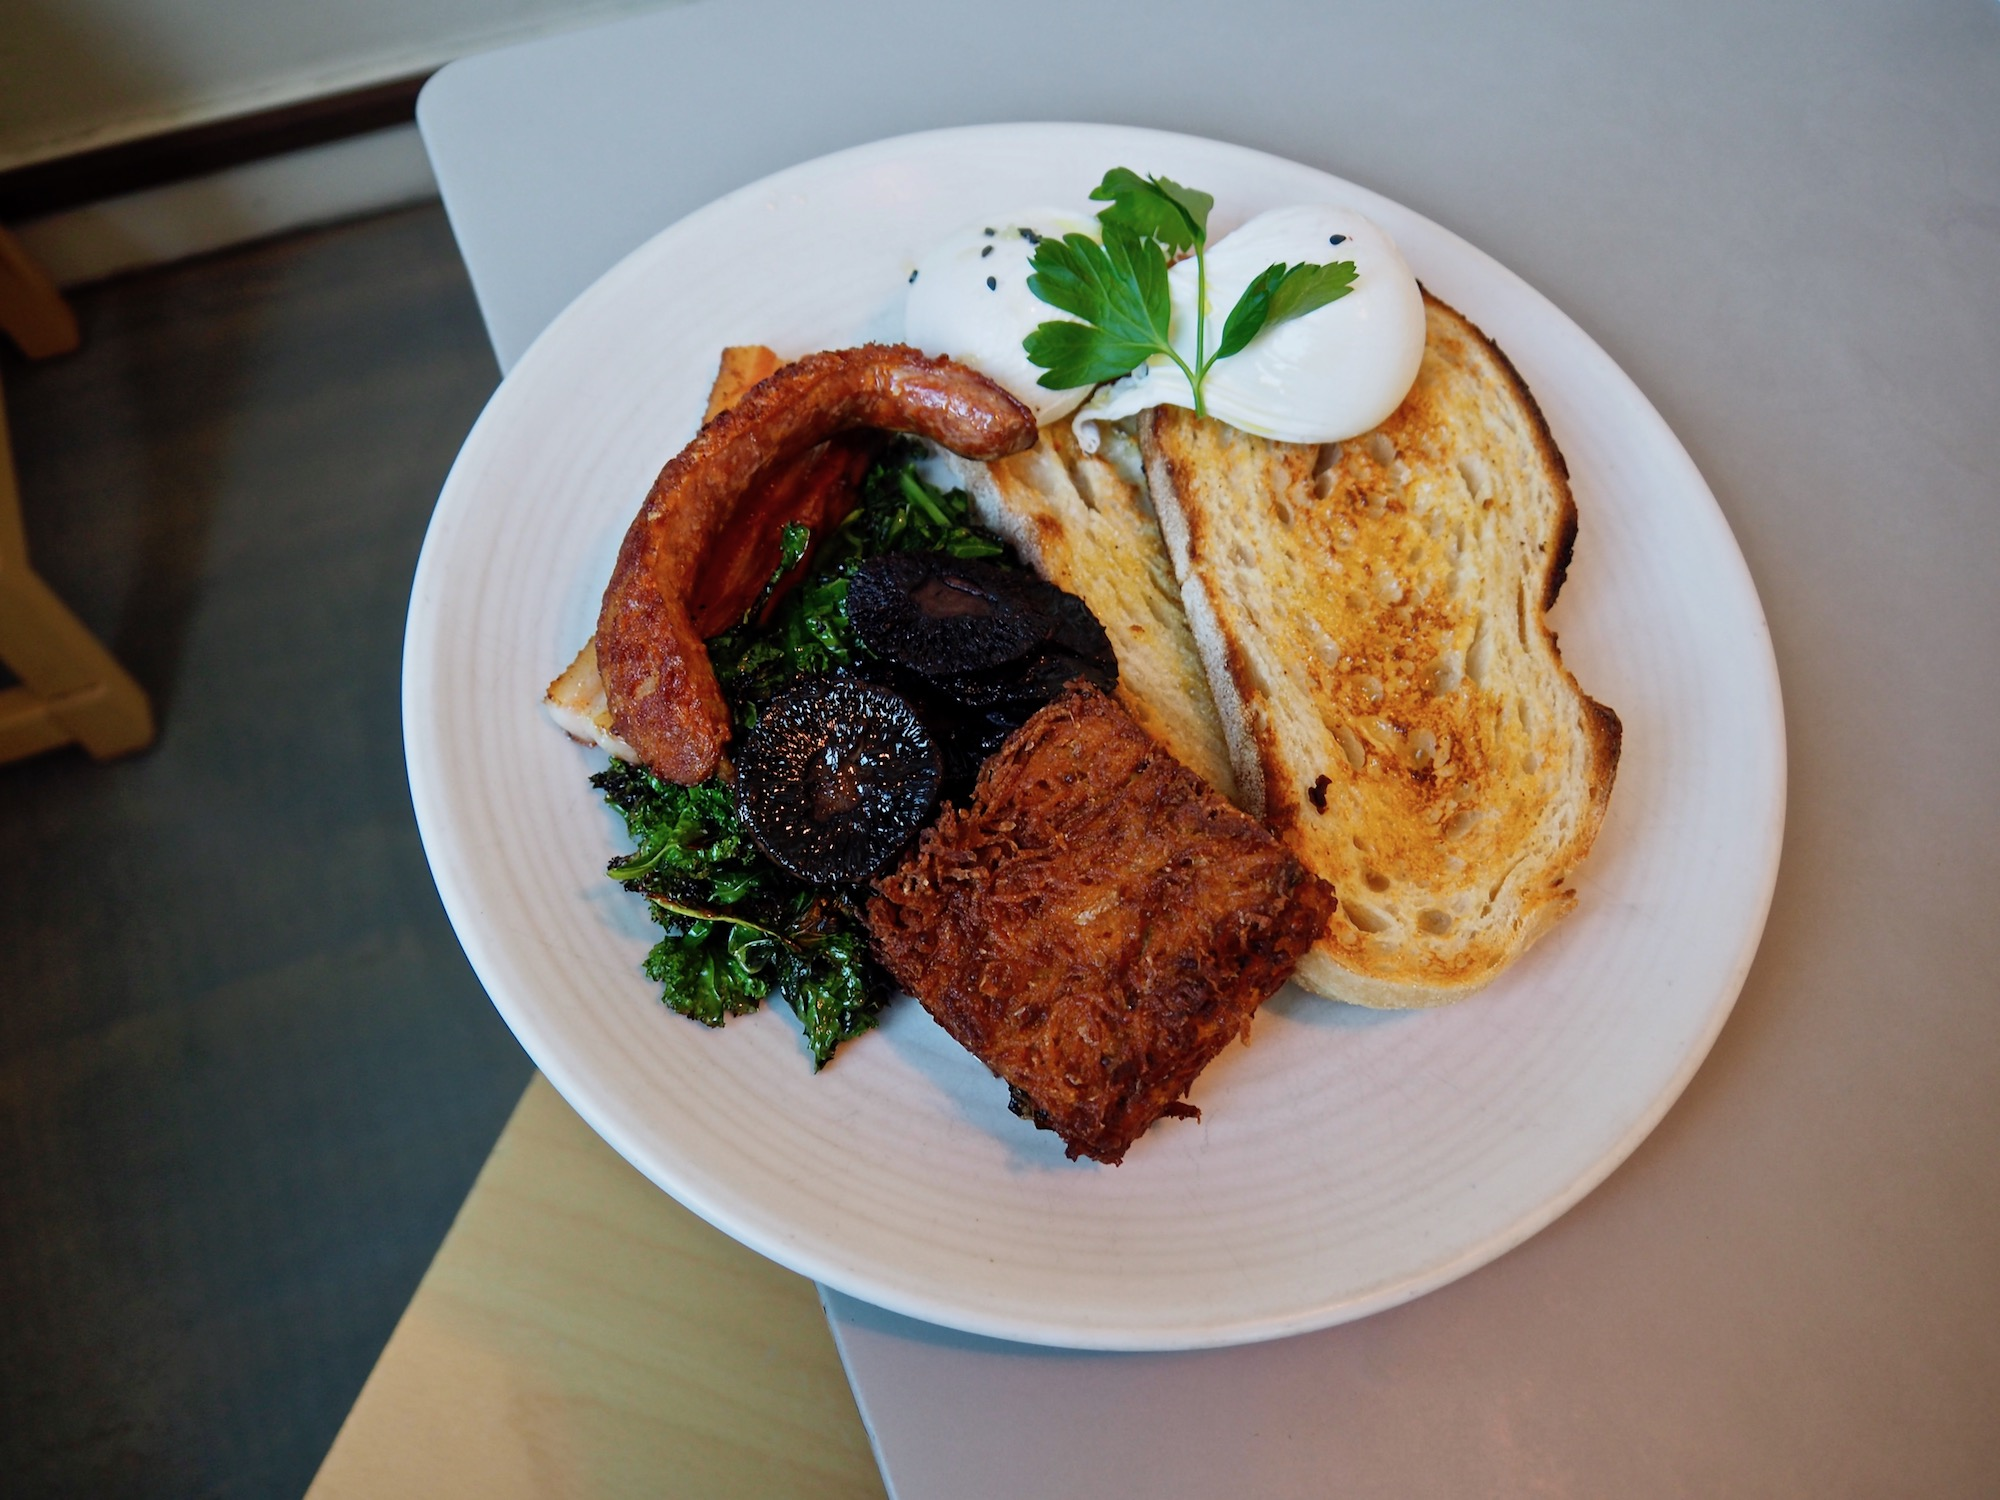 Boy's Breakfast (not real name) | thick cut bacon, sauteed kale, hash brown, sausage, two poached eggs and toast